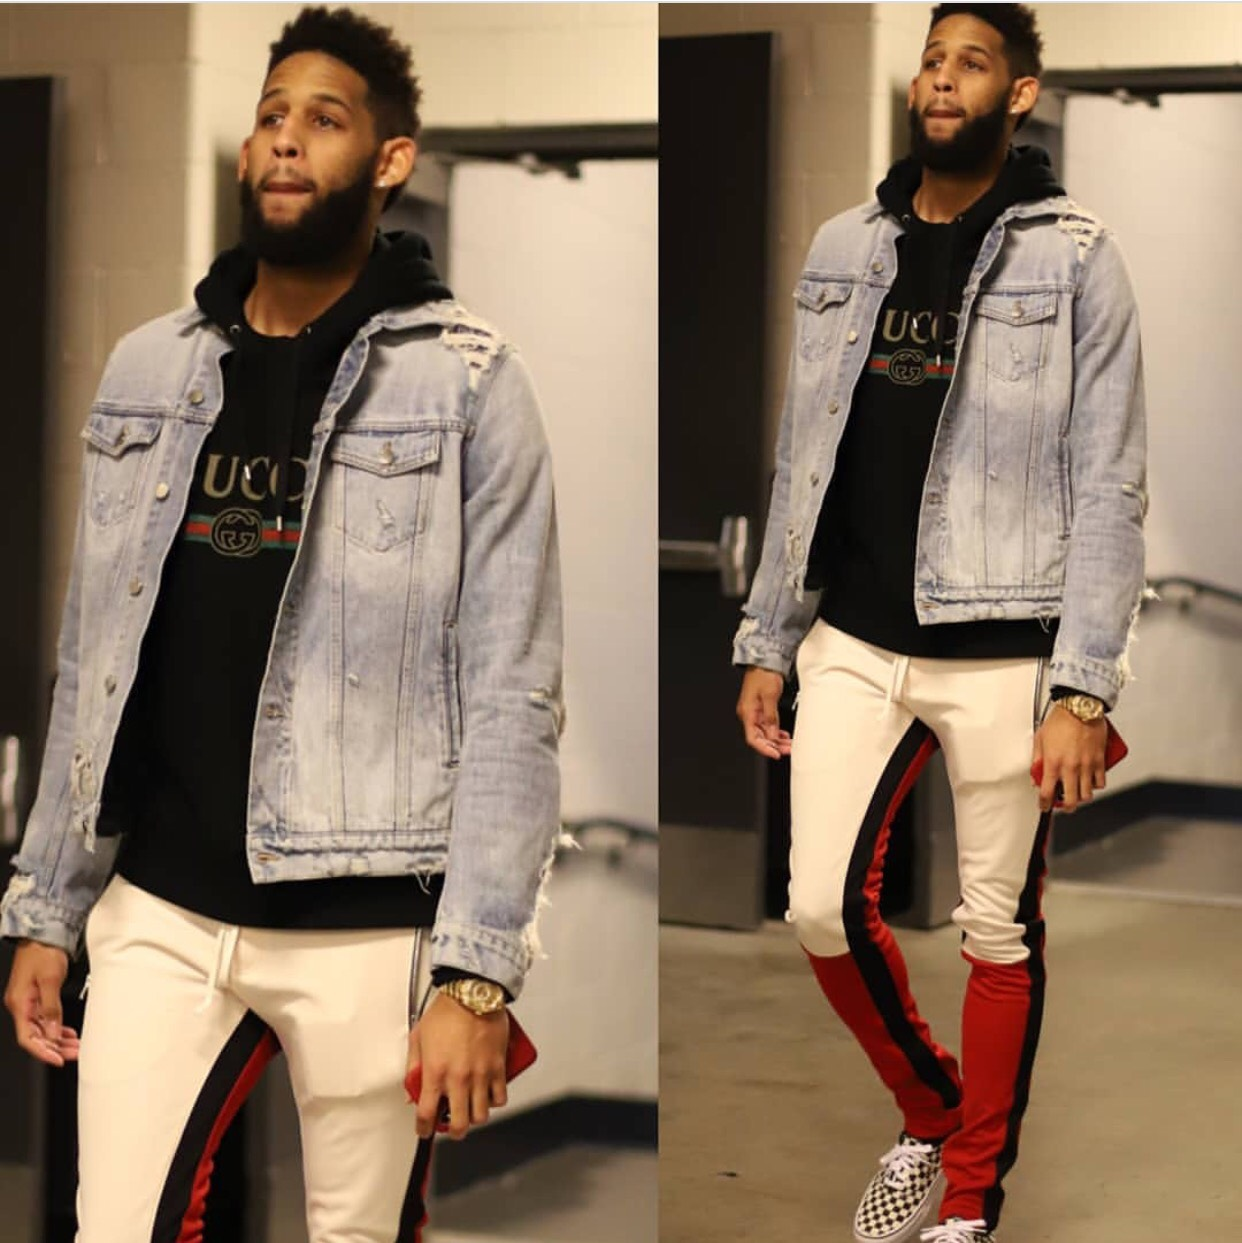 Allen Crabbe's Barclays Center Amiri Jacket, Gucci Hoodie, and Fear Of God Motocross Pants